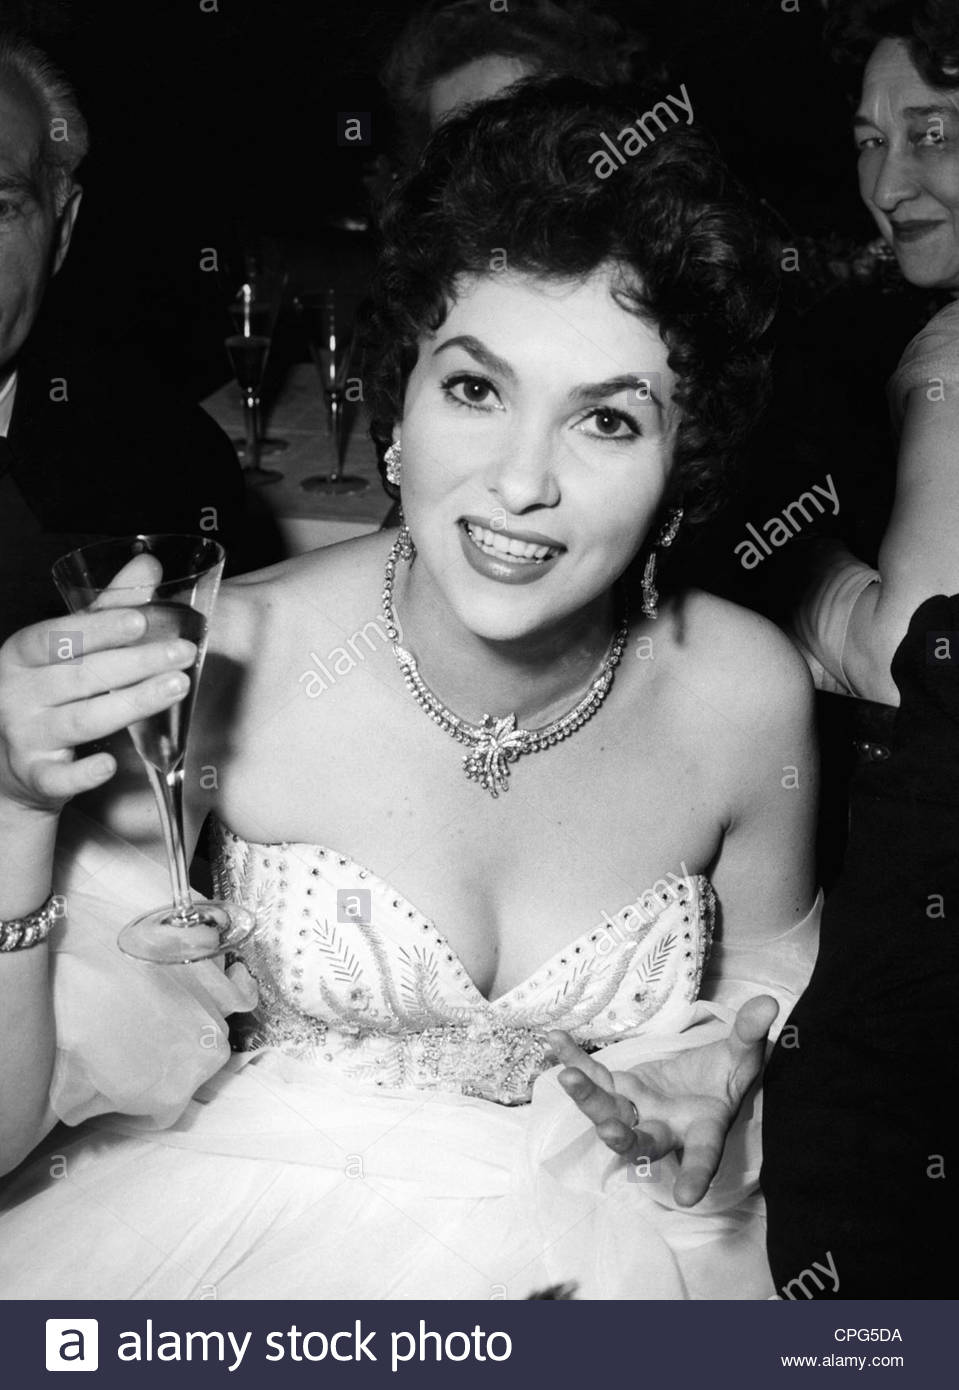 Lollobrigida, Gina, * 4.7.1927, Italian actress, with champagne glass, , Additional-Rights-Clearances-NA Stock Photo